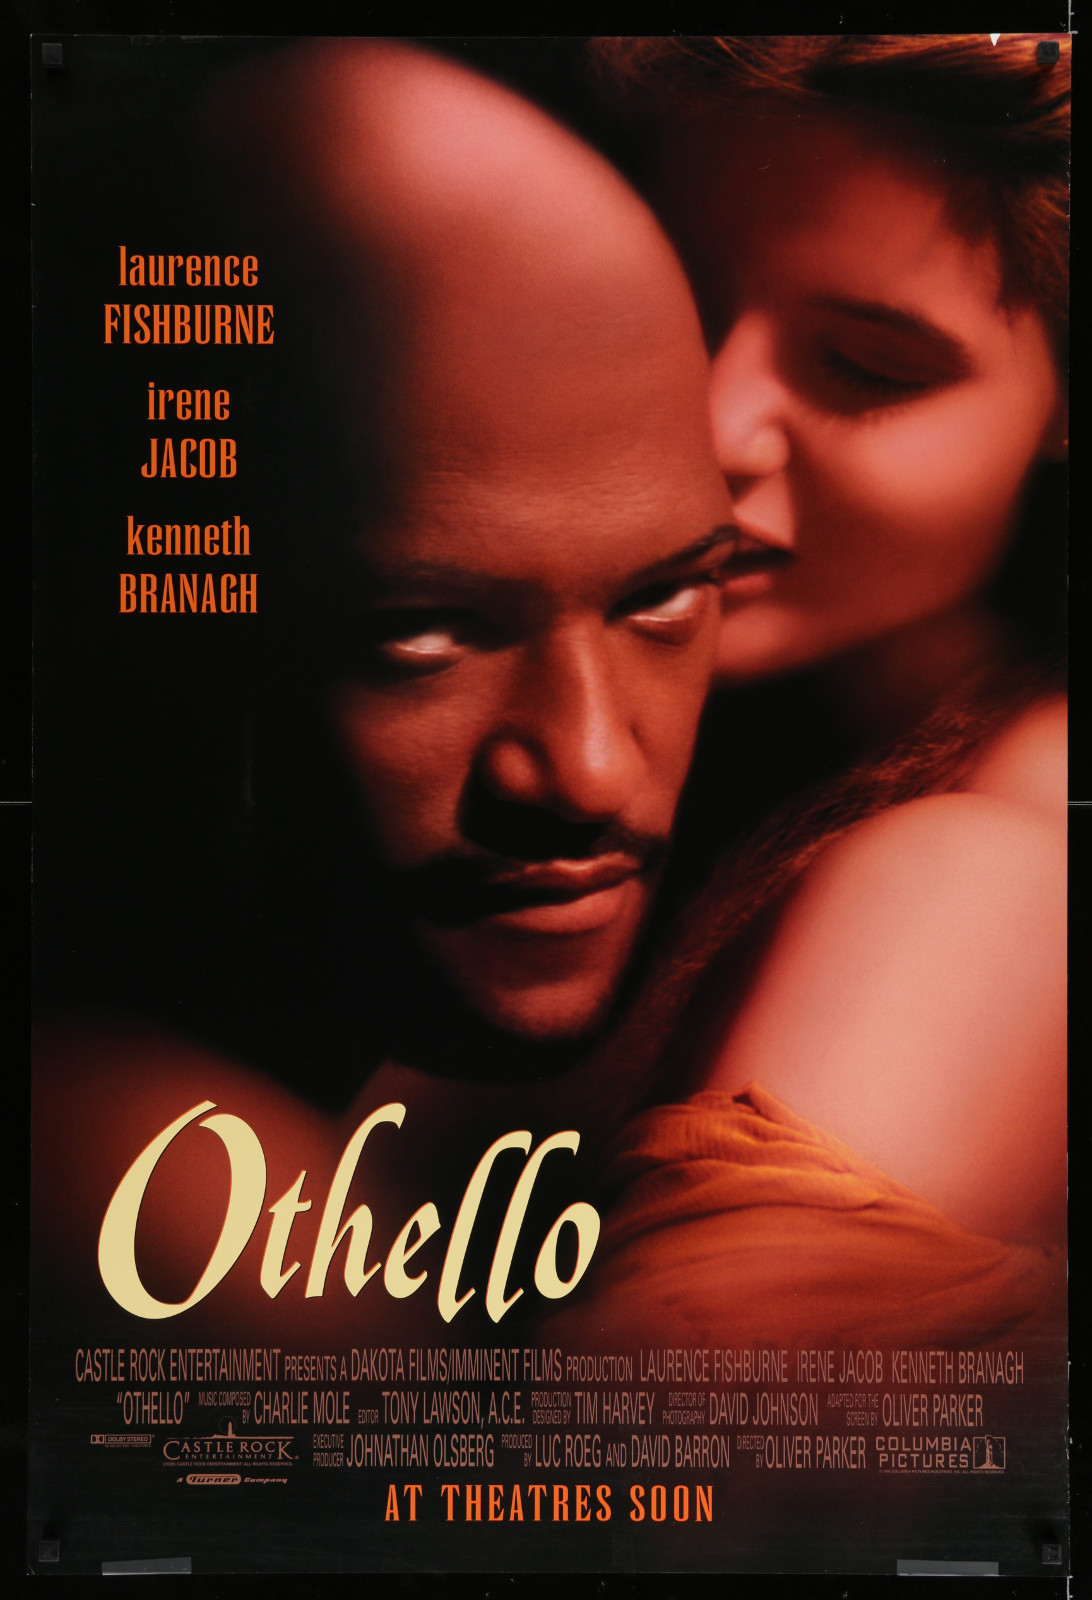 Othello 2A446 A Part Of A Lot 17 Unfolded Mostly Double-Sided 27X40 One-Sheets '90S-00S Great Movie Images!